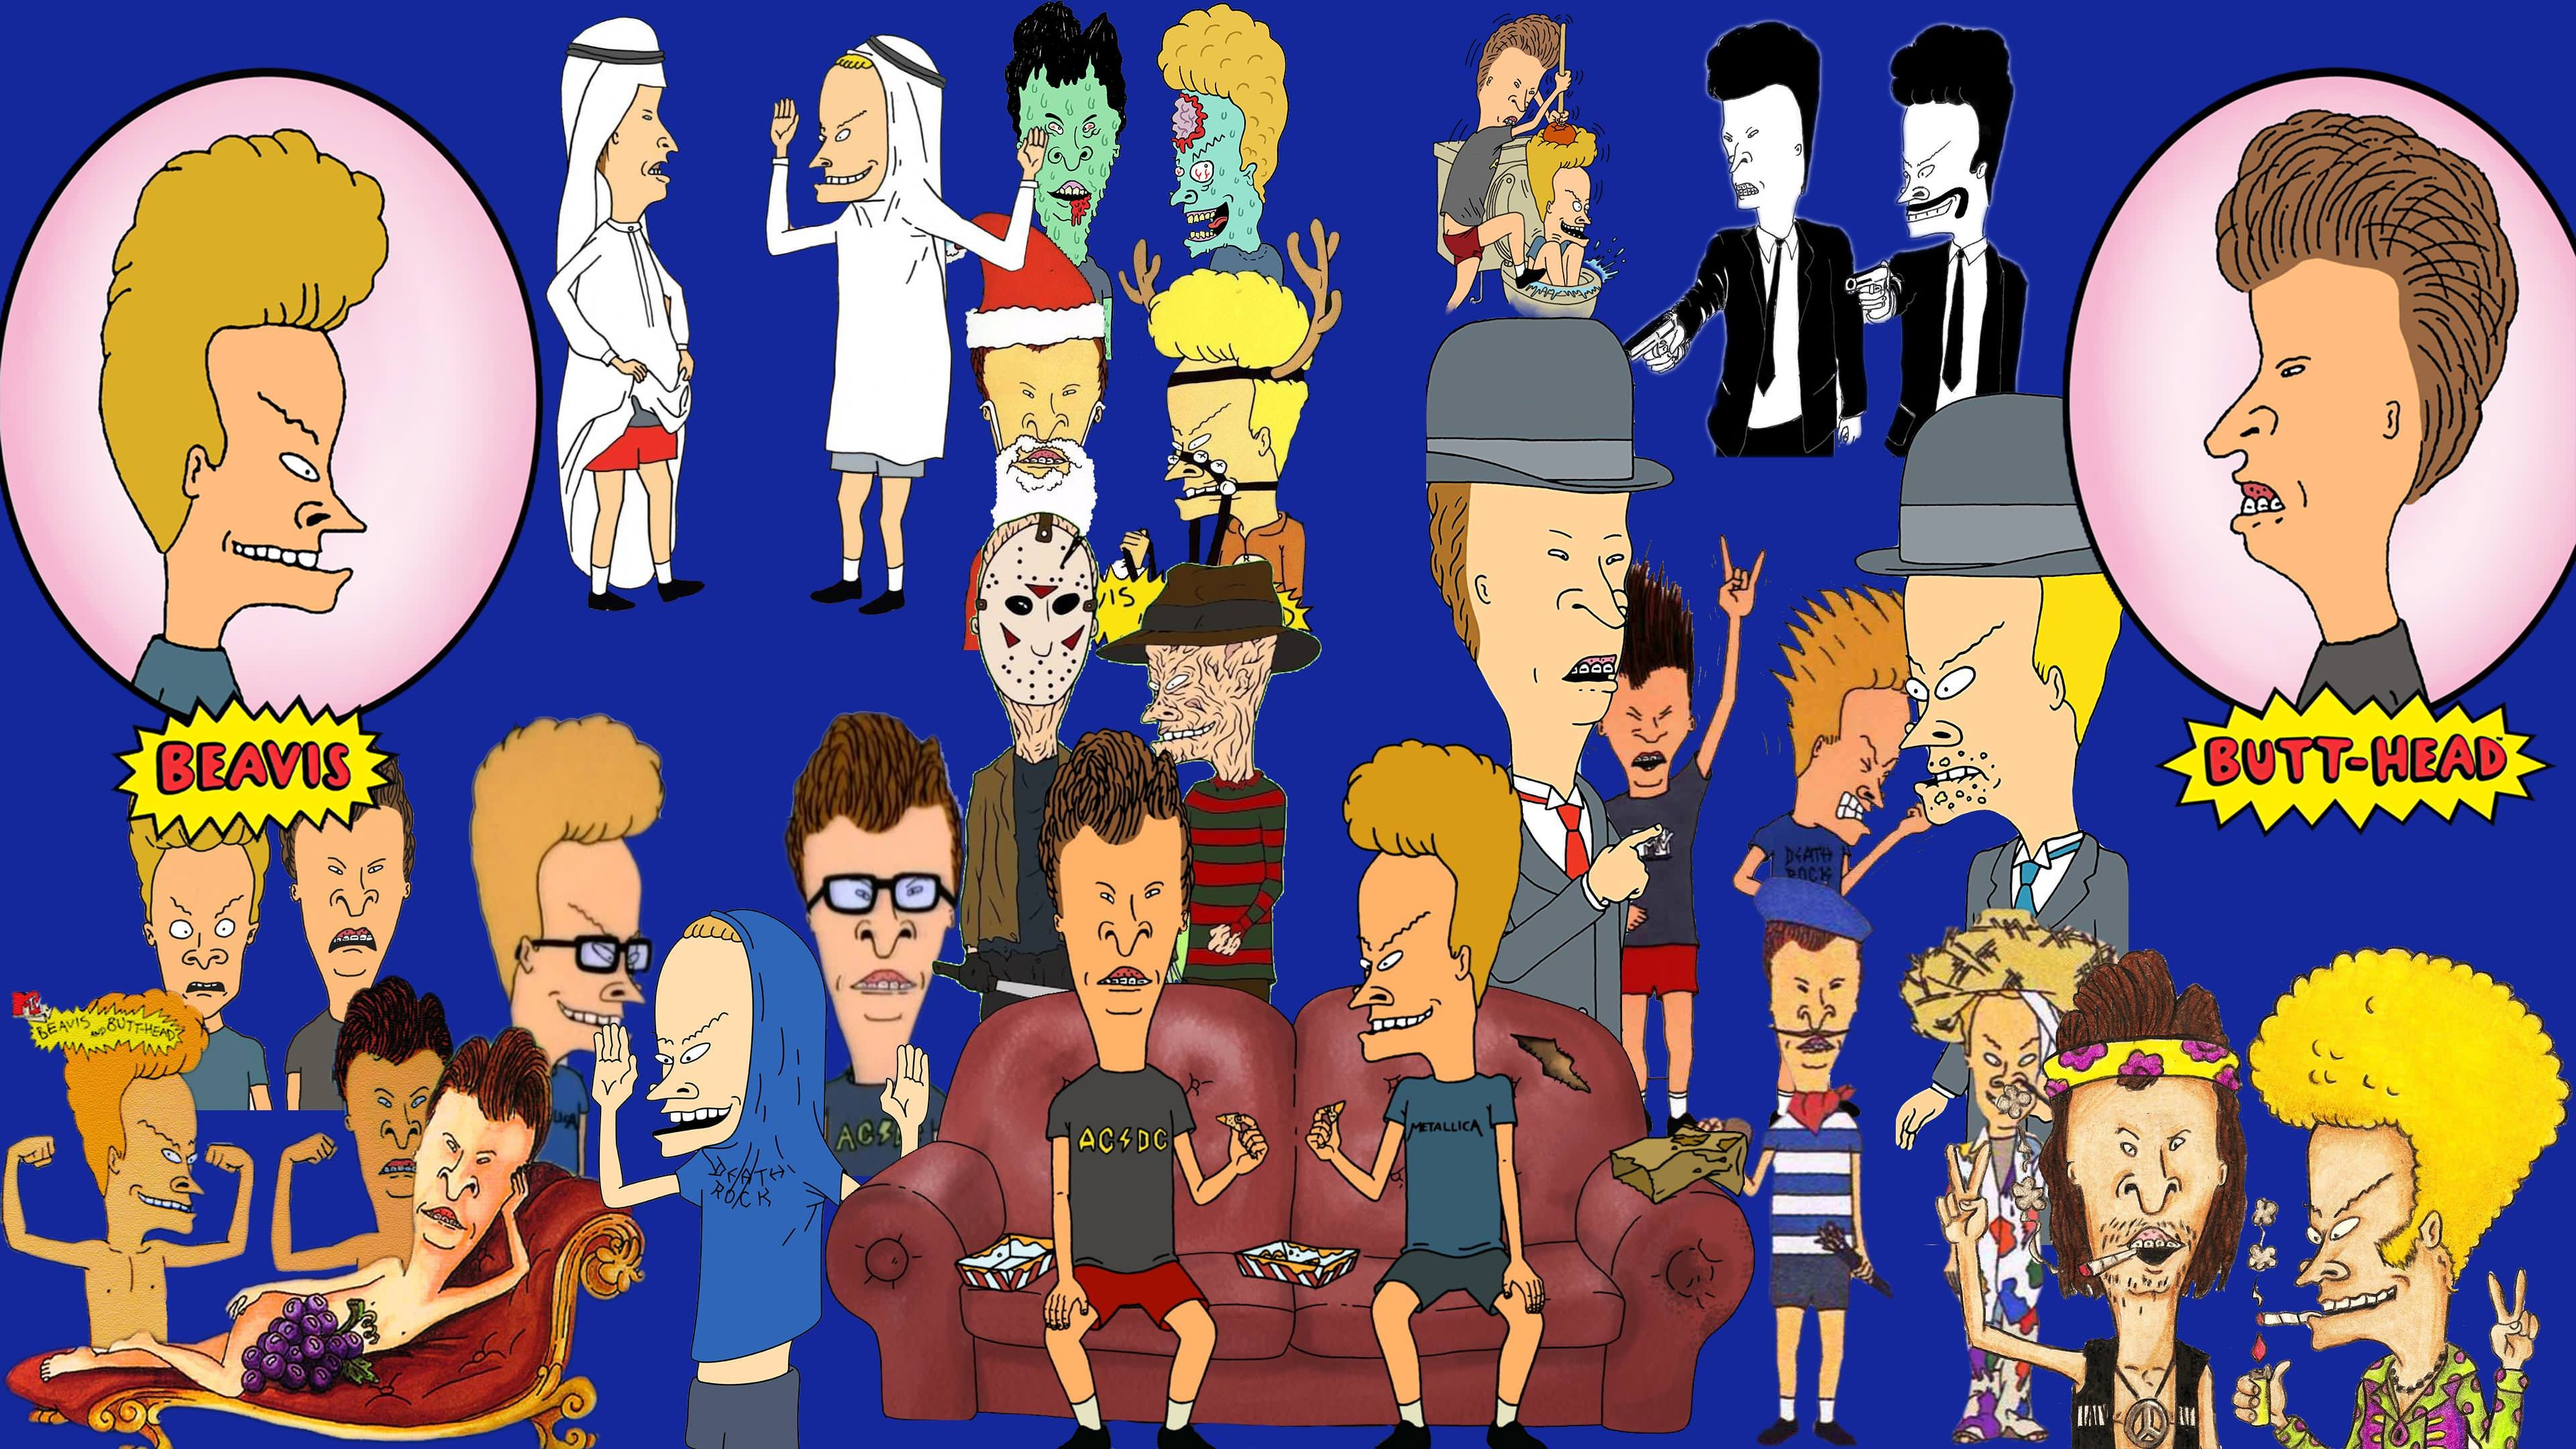 Butthead 4k Wallpapers For Your Desktop Or Mobile Screen Free And